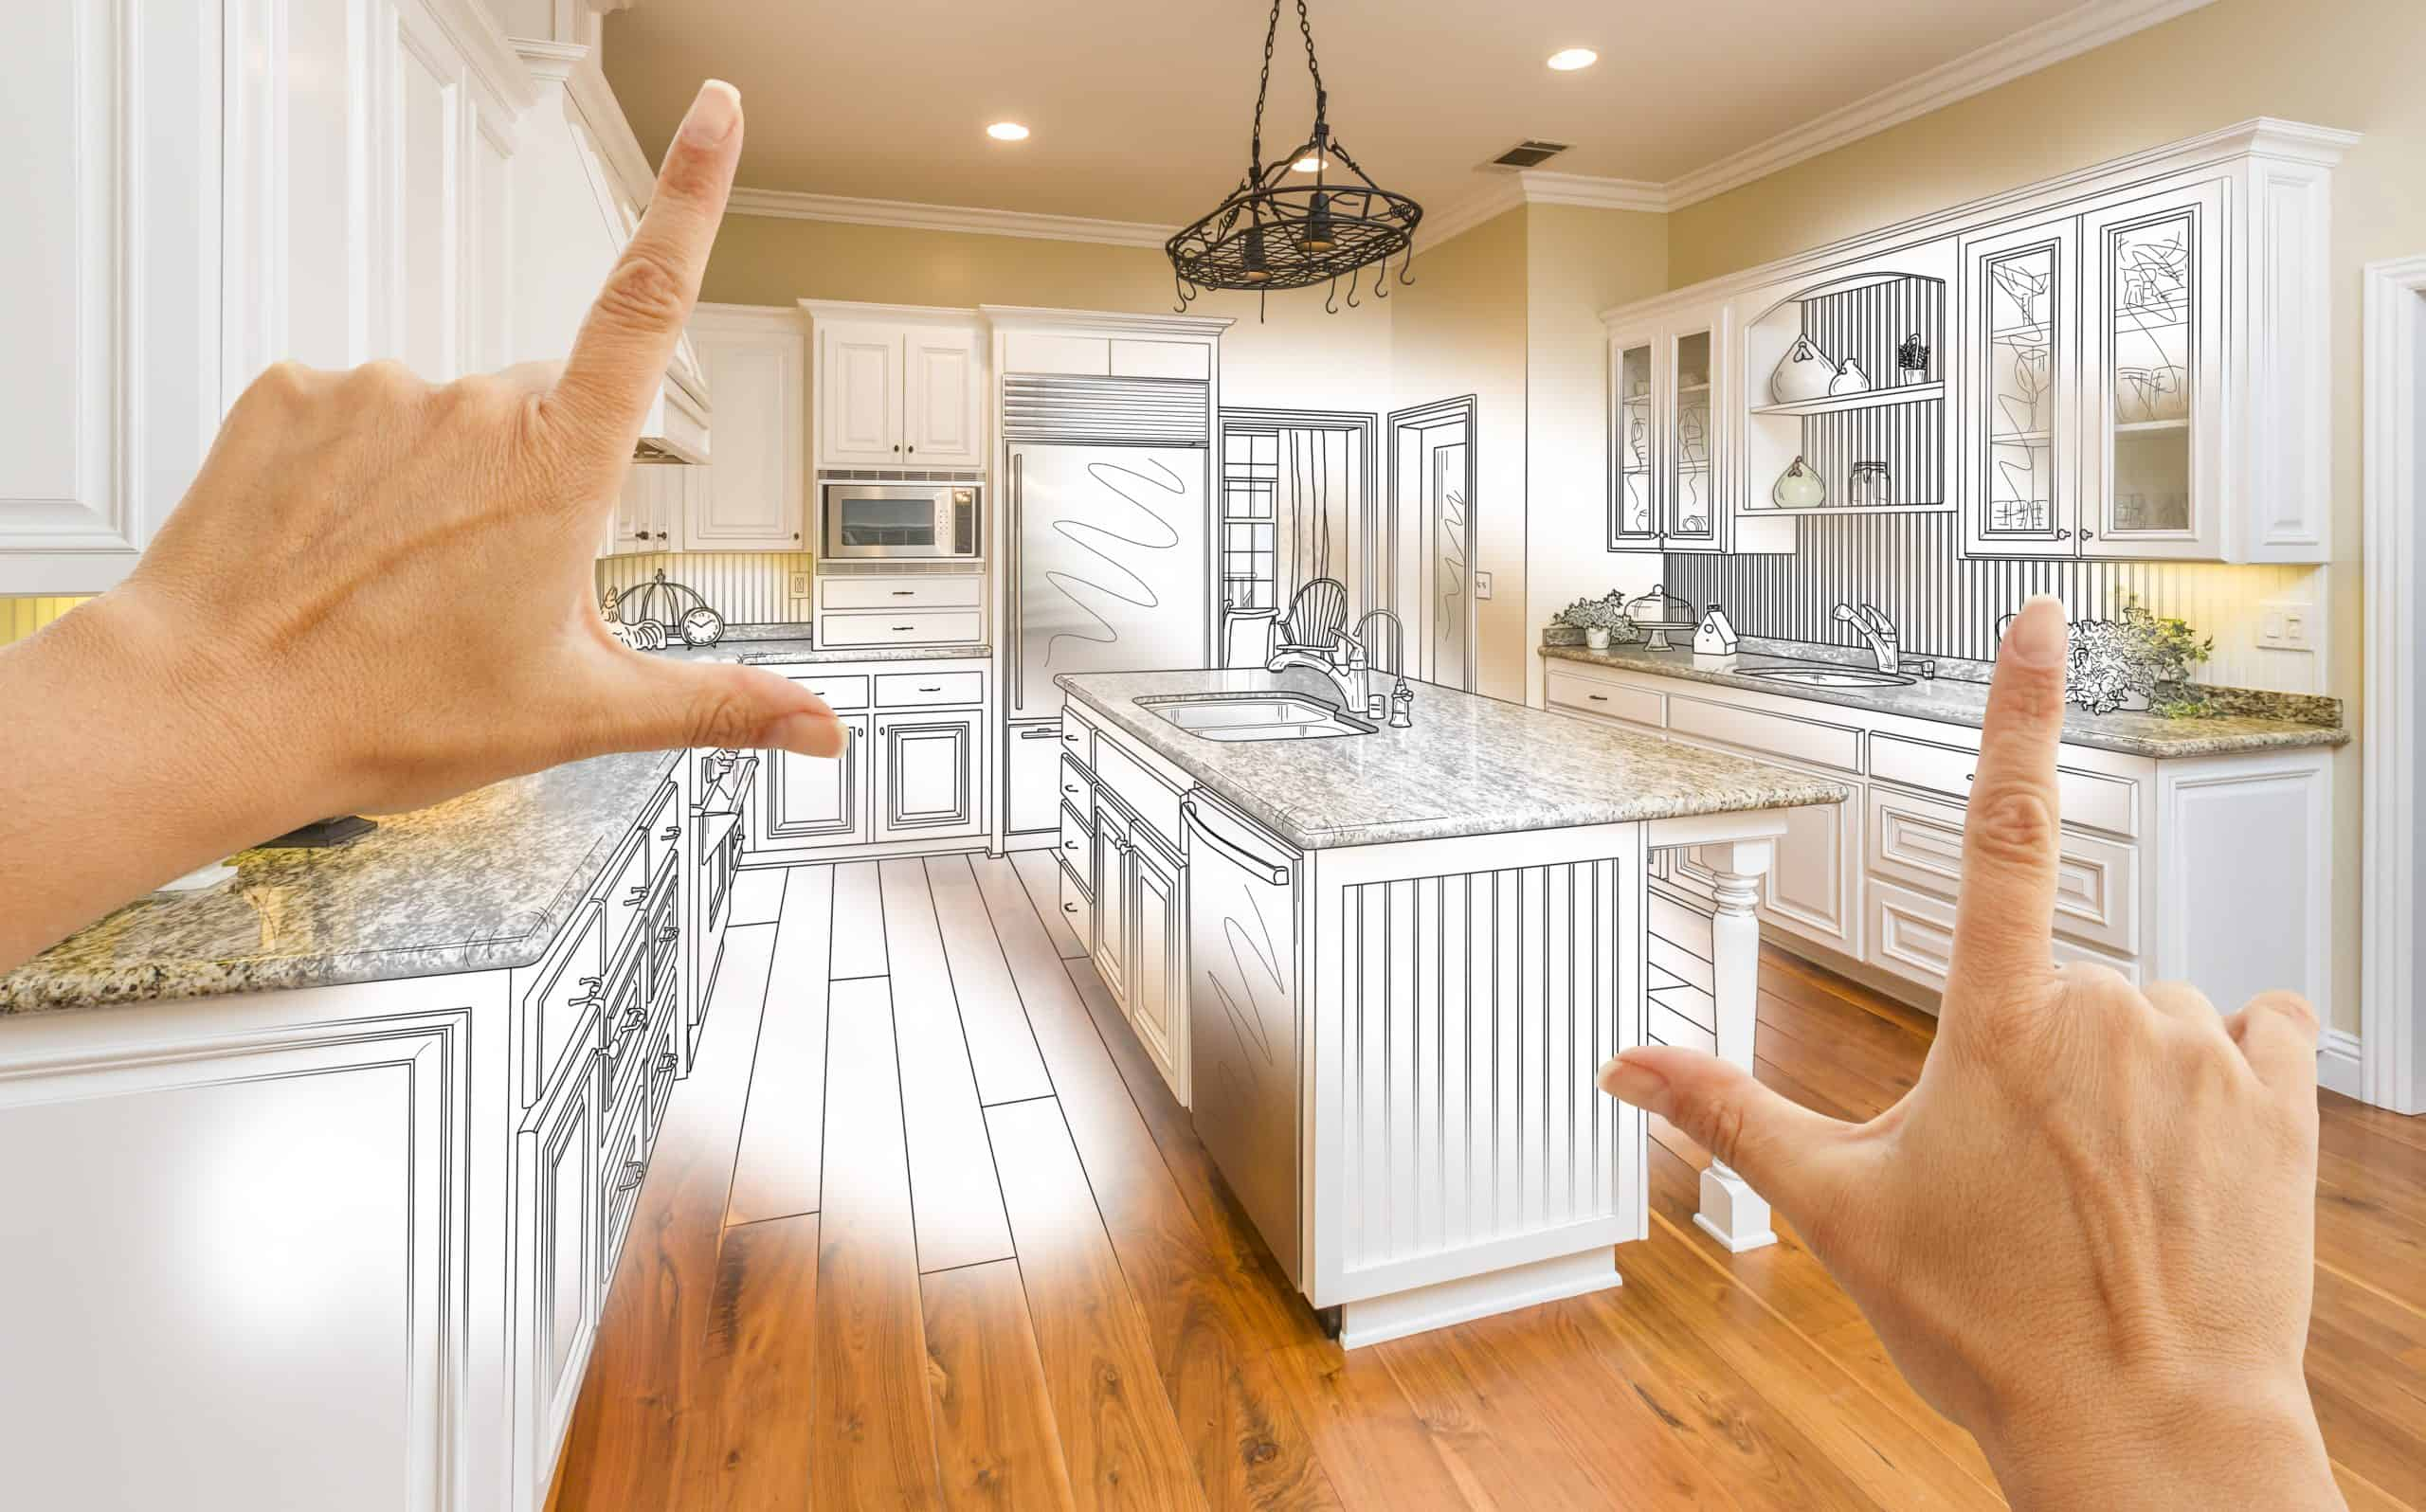 Remodel kitchen for less - Female Hands Framing Custom Kitchen Design Drawing and Photo Combination.